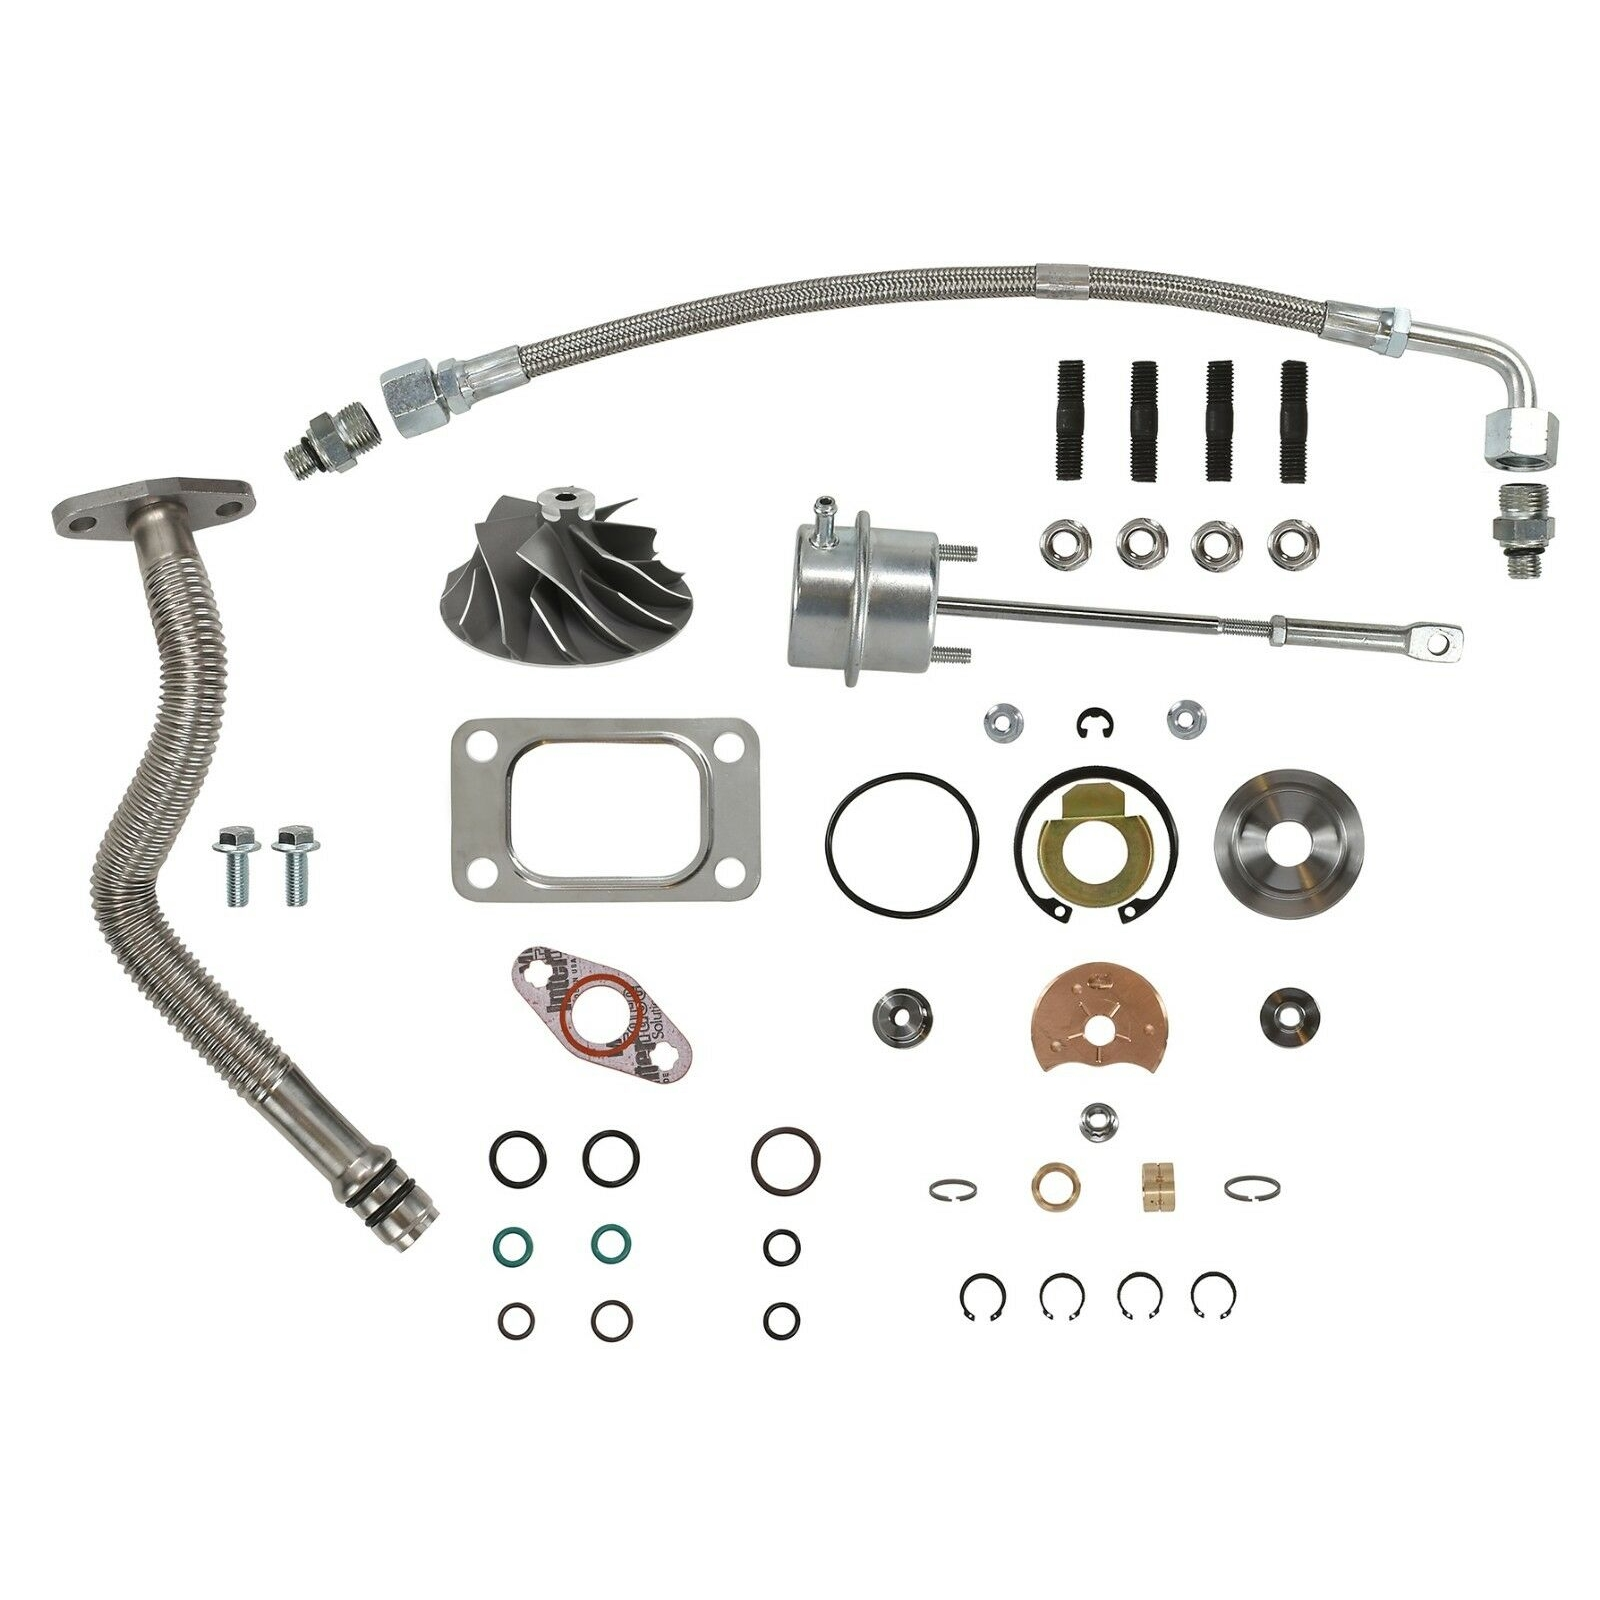 HE351CW Turbo Rebuild Kit Cast Wheel Wastegate Actuator Oil Lines For 04.5-07 5.9L ISB Dodge Ram Cummins Diesel